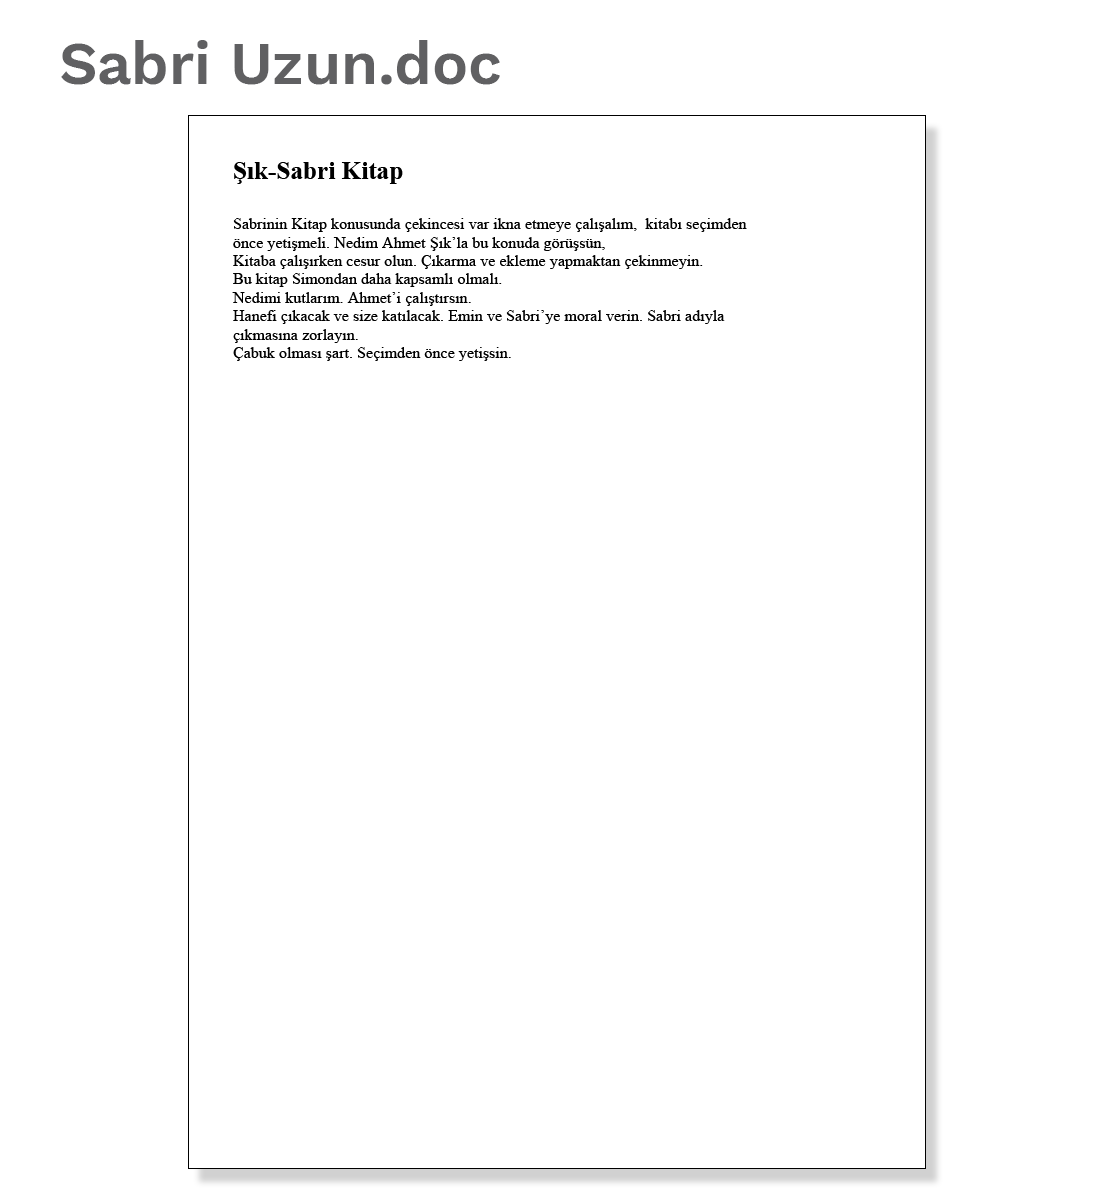 Document 6: Sabri Uzun.doc